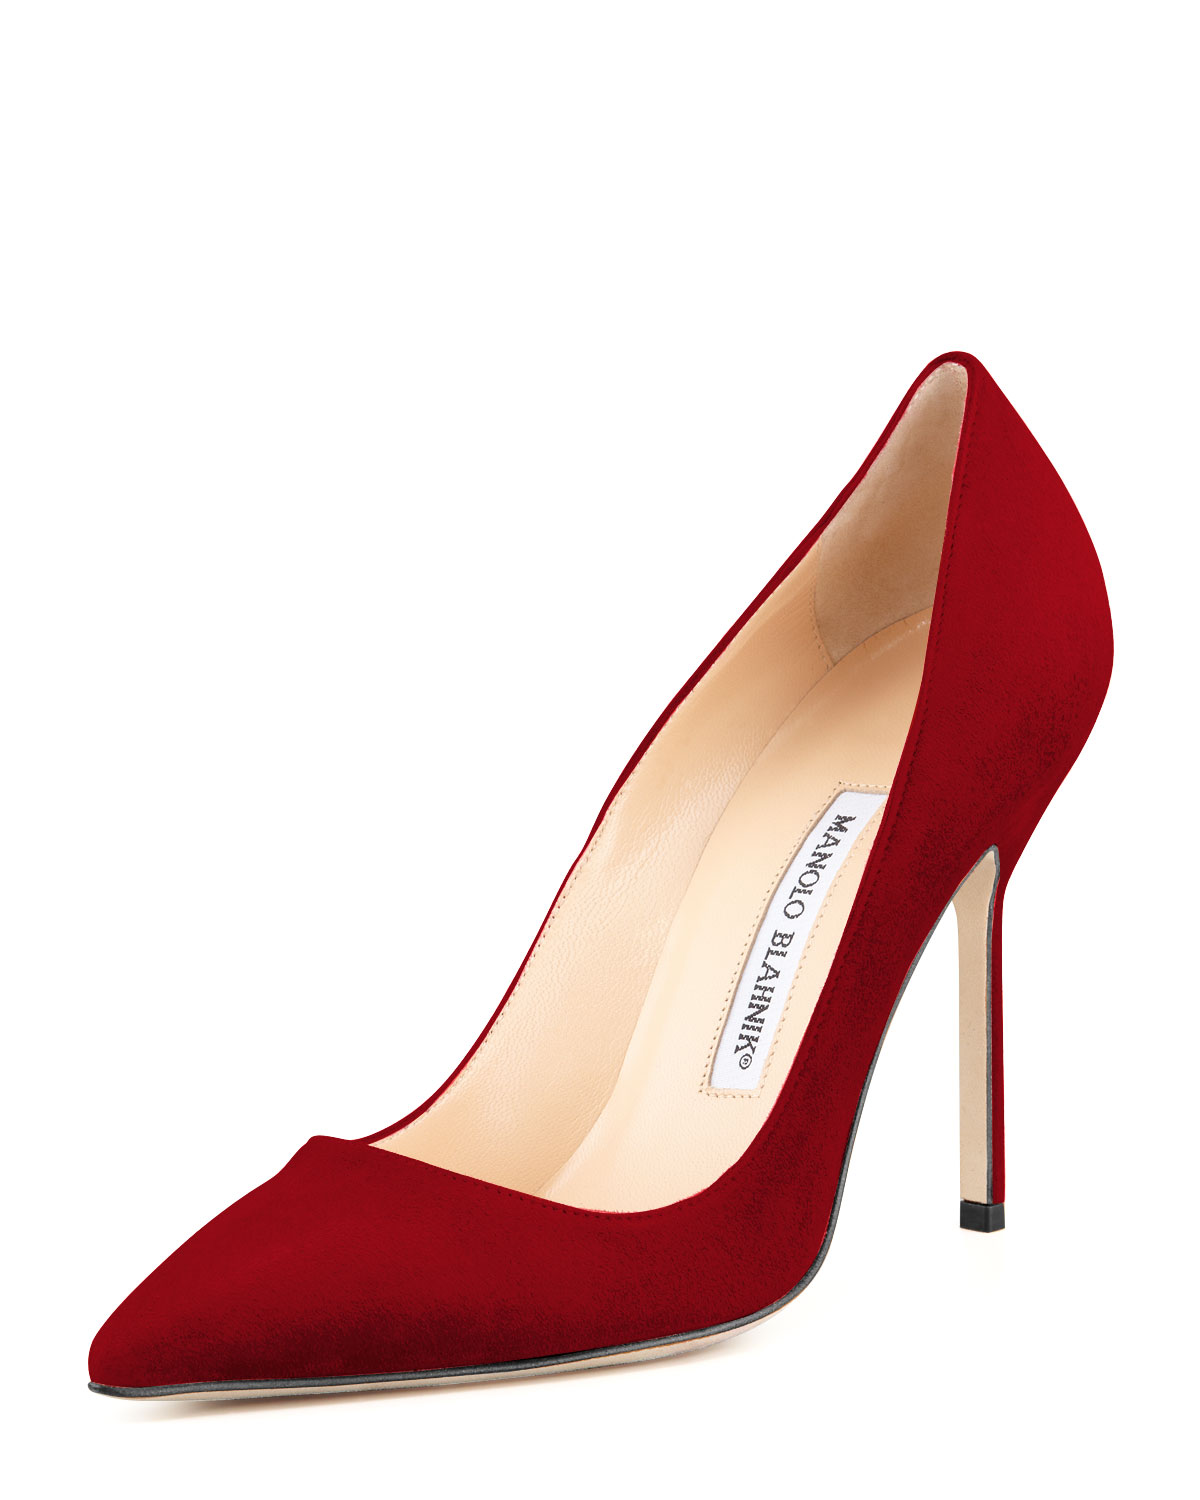 Manolo Blahnik BB Suede 105mm Pump, Ruby (Red) (Made to Order), Women's, Size: 38.0B/8.0B